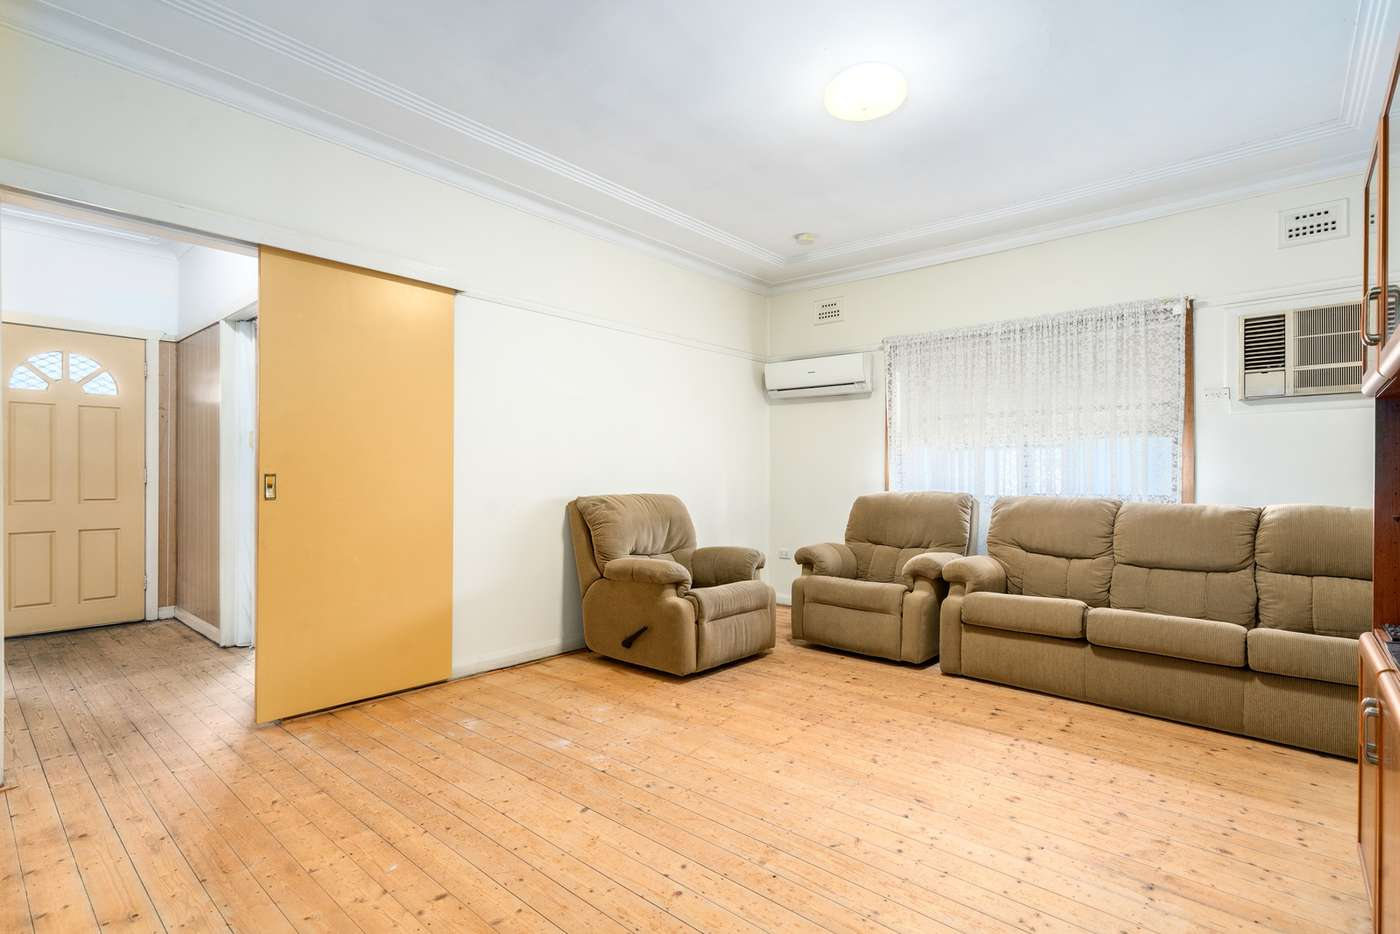 Sixth view of Homely house listing, 43 William Street, Holroyd NSW 2142